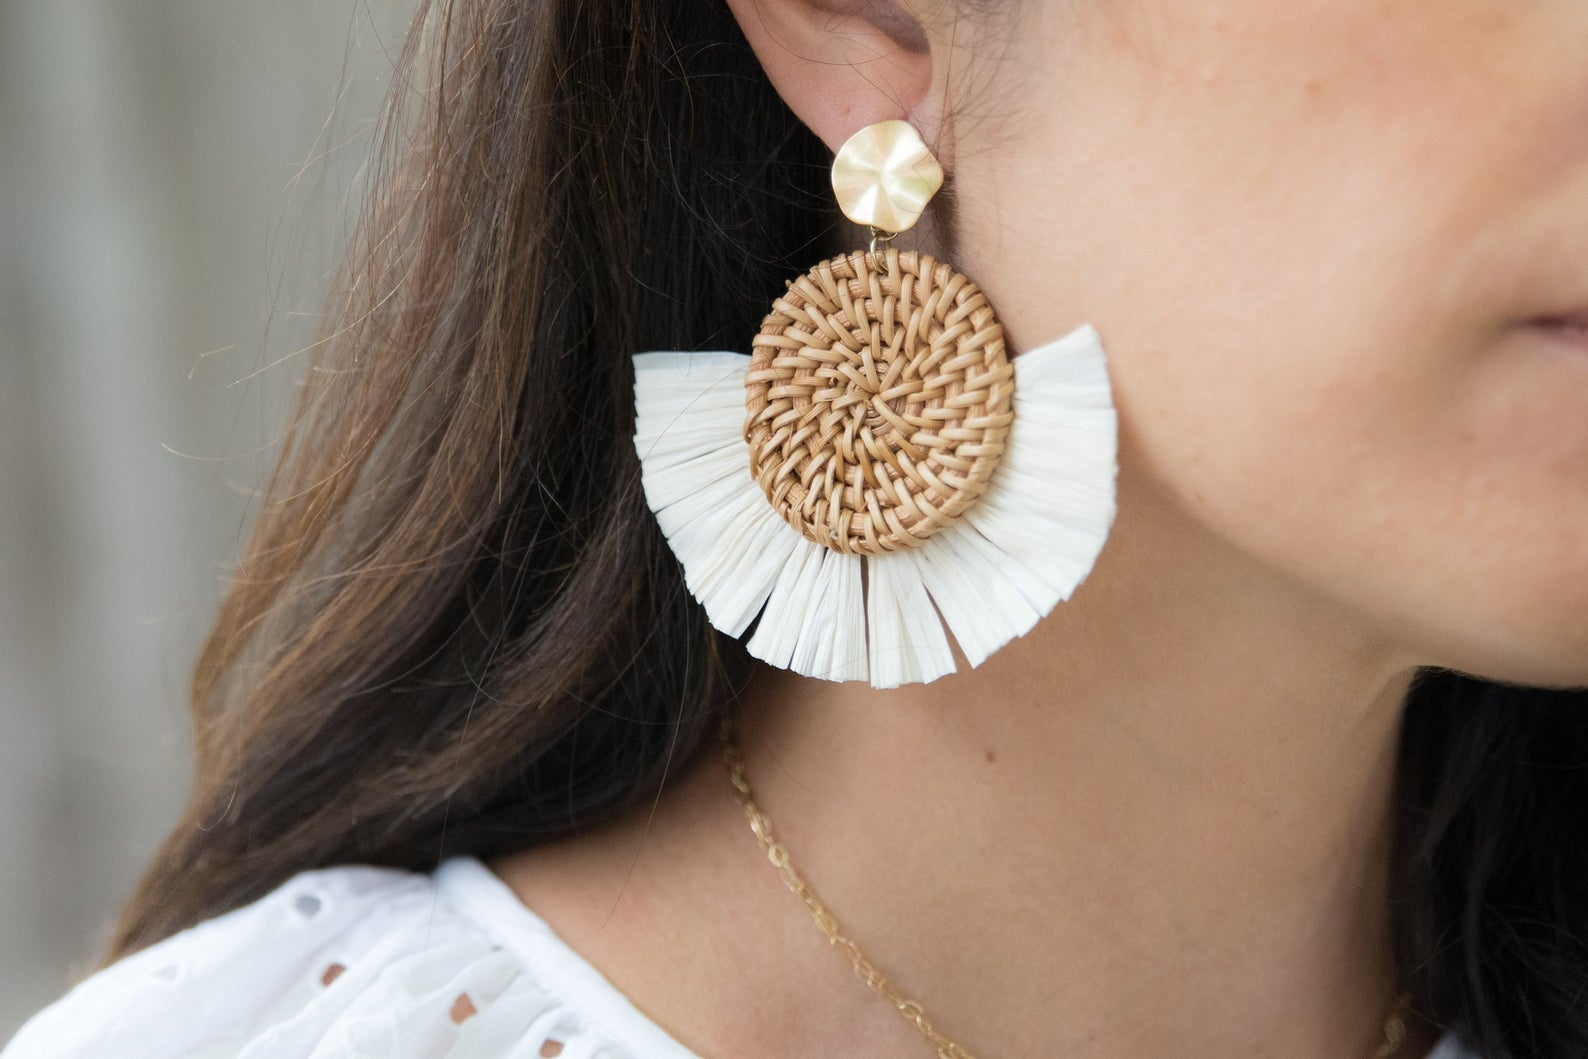 Woven Rattan Earrings by LIV Rose